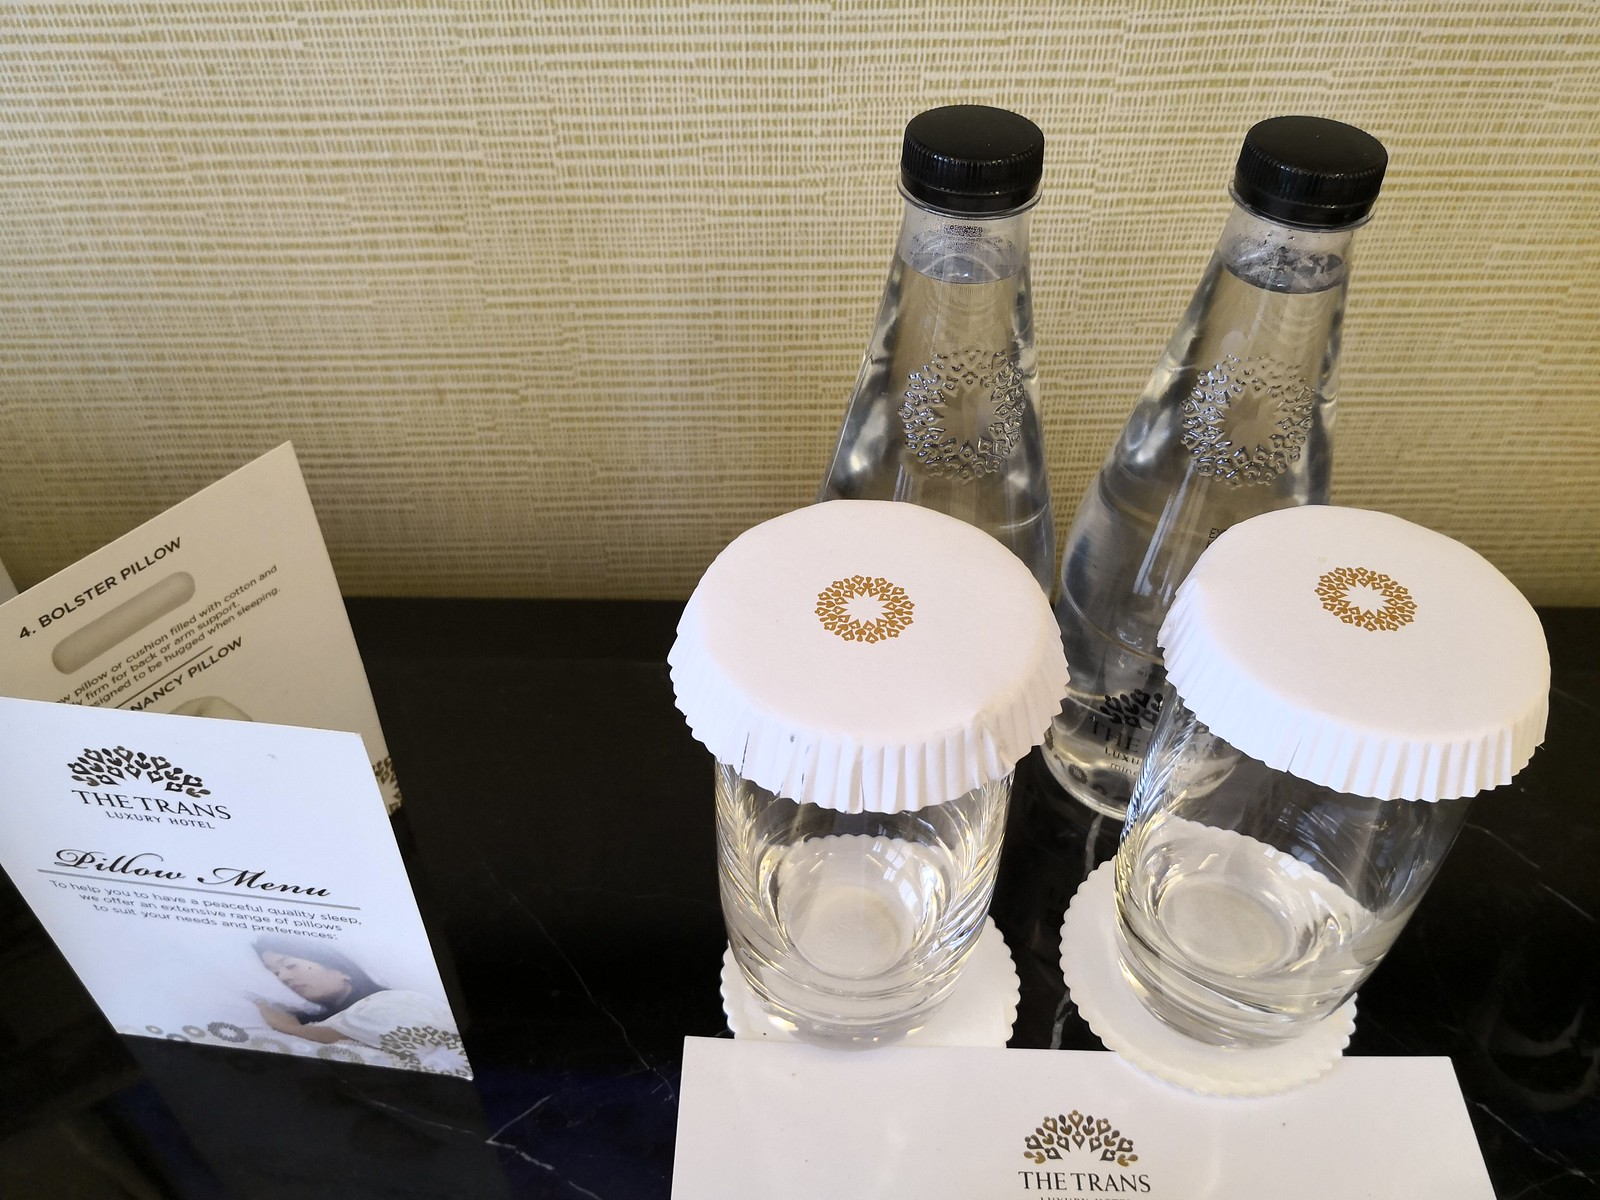 Bottled water and glasses